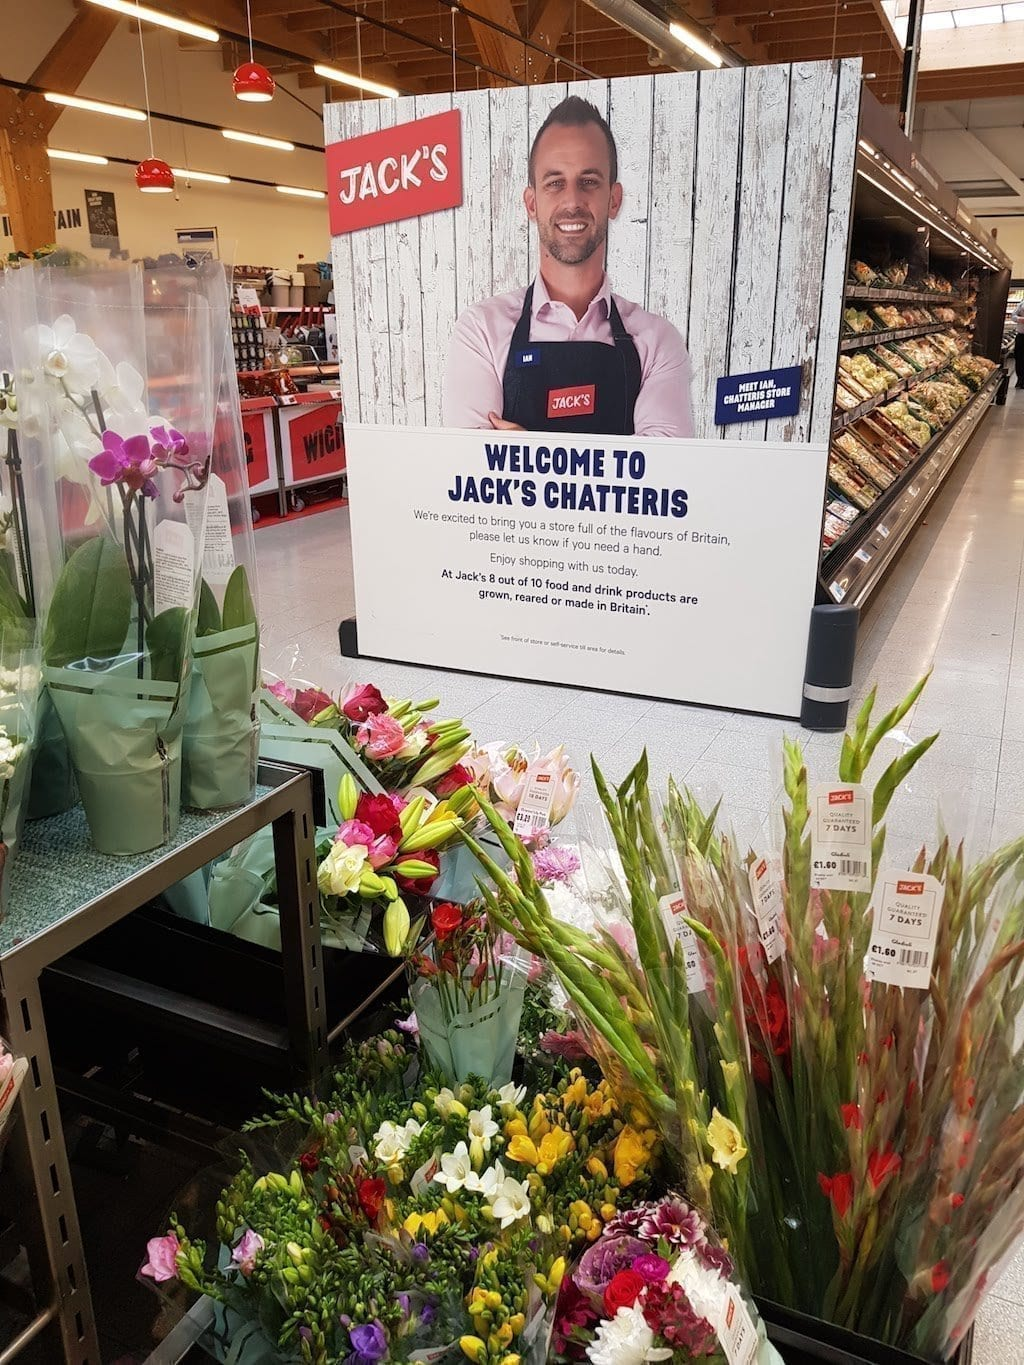 A Poster of Tesco Jack's in a grocery store